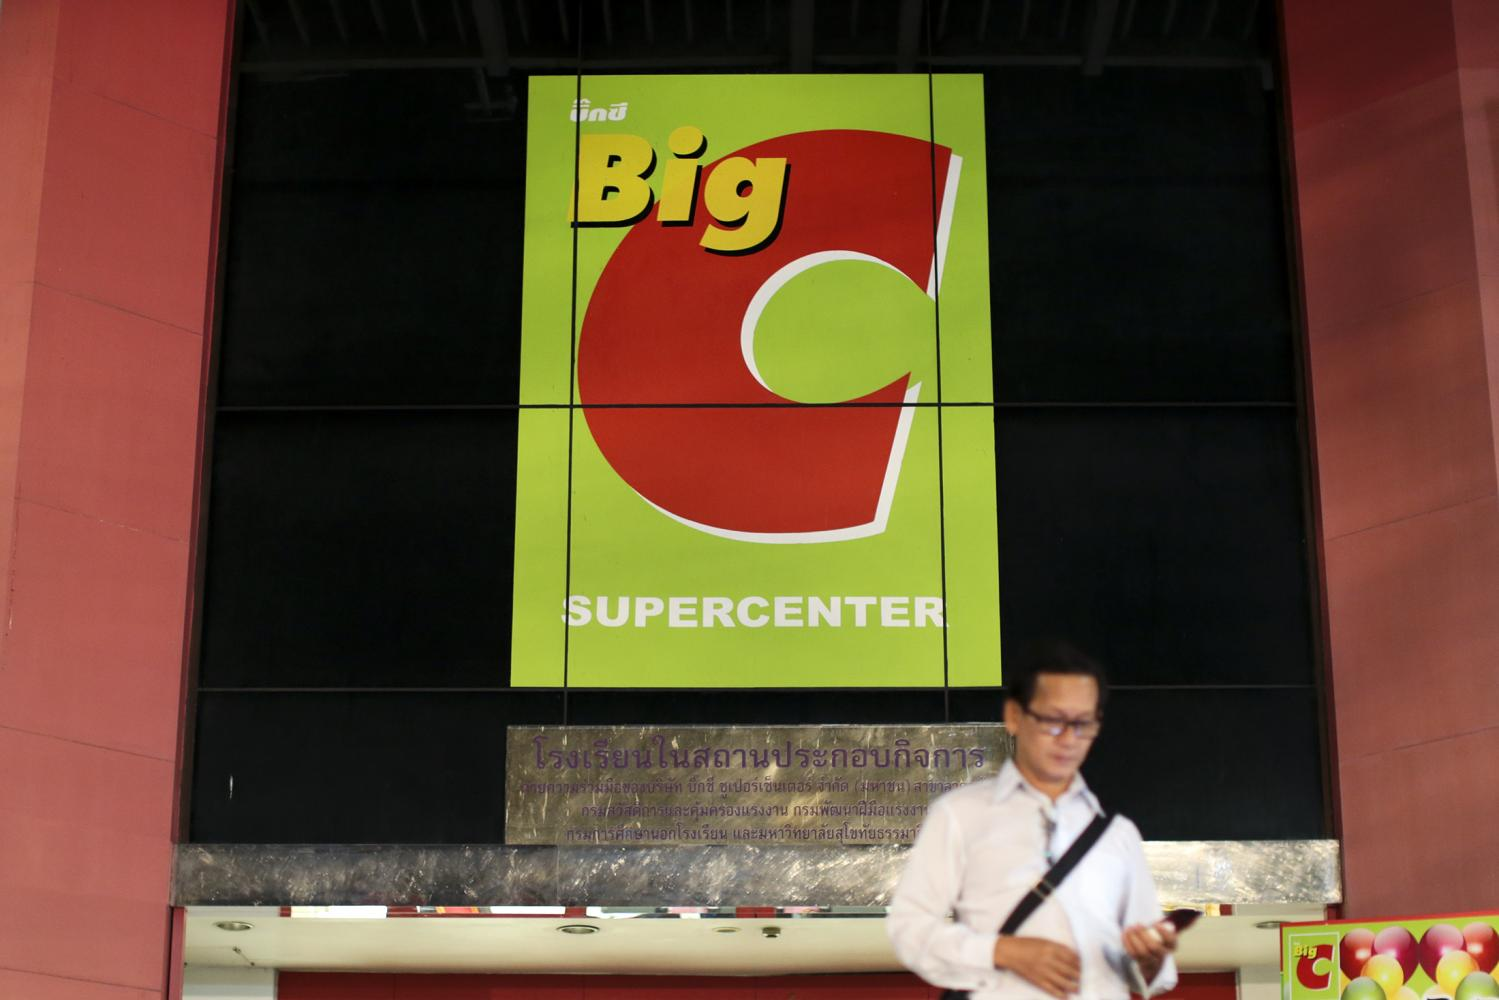 A shopper walks past a Big C Supercenter in Bangkok. The company operates 1,231 stores across the country. (Photo by Patipat Janthong)